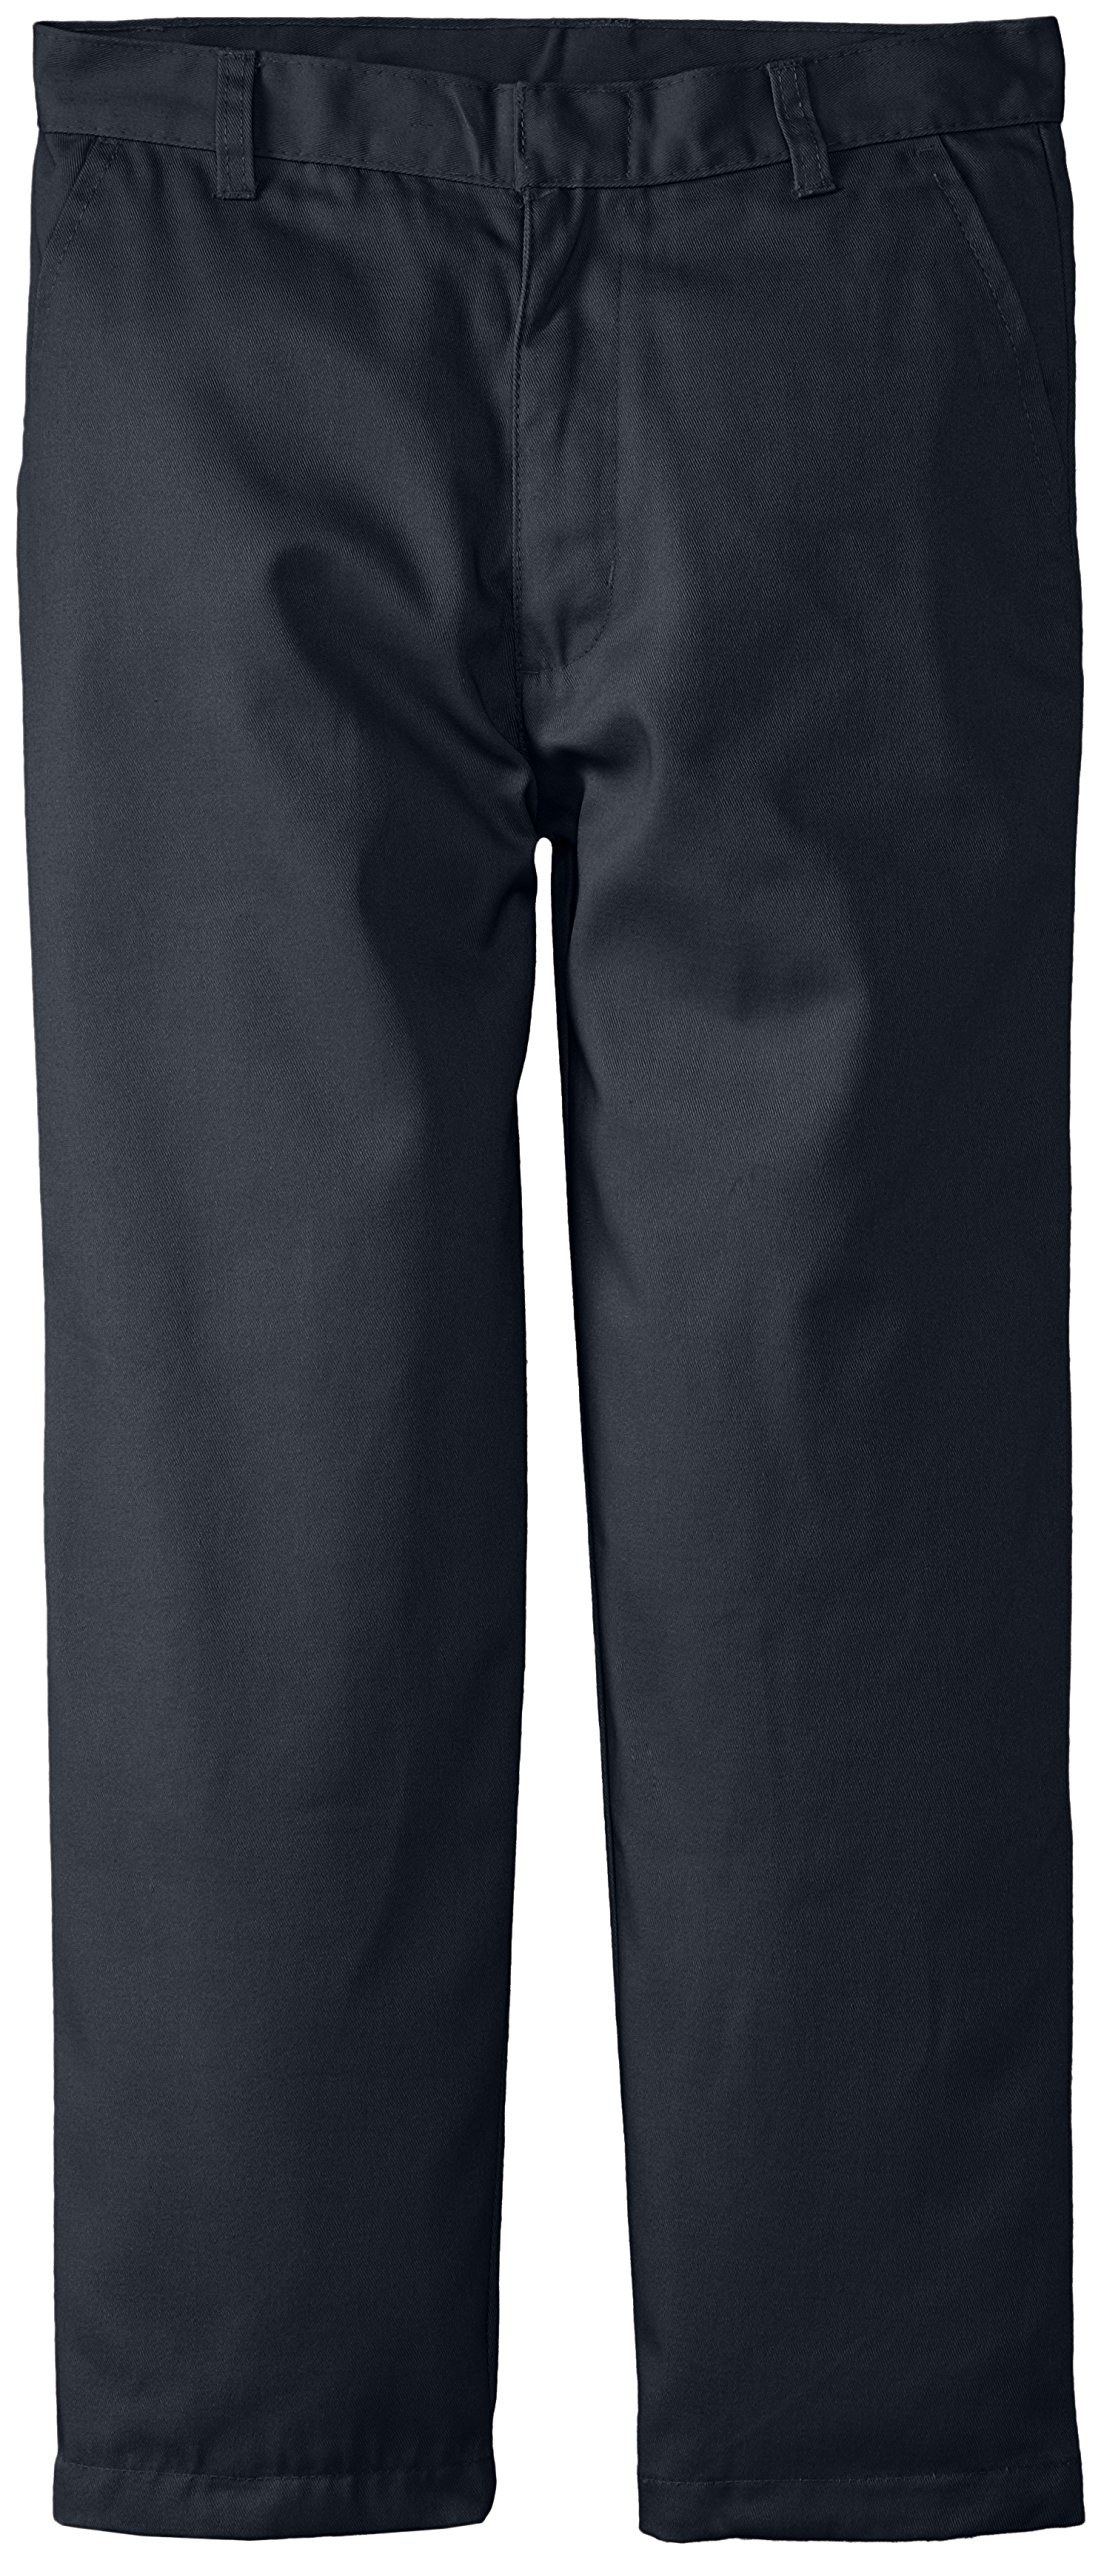 Genuine School Uniform Boys Twill Pant (More Styles Available), Basic Navy, 14H